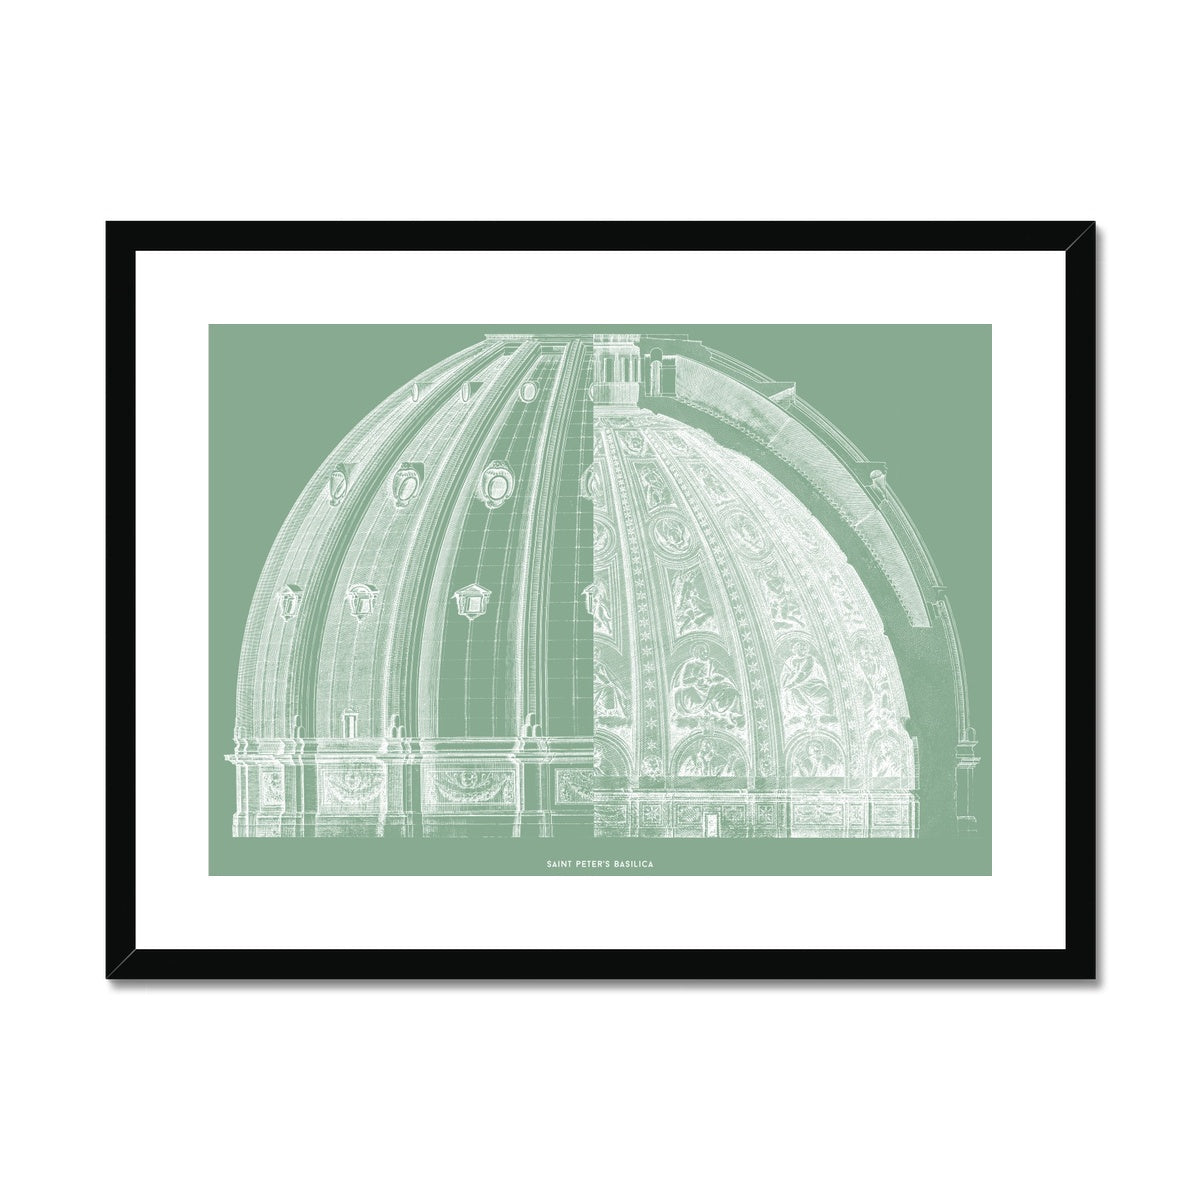 Saint Peter's Basilica - Dome Cross Section - Green -  Framed & Mounted Print